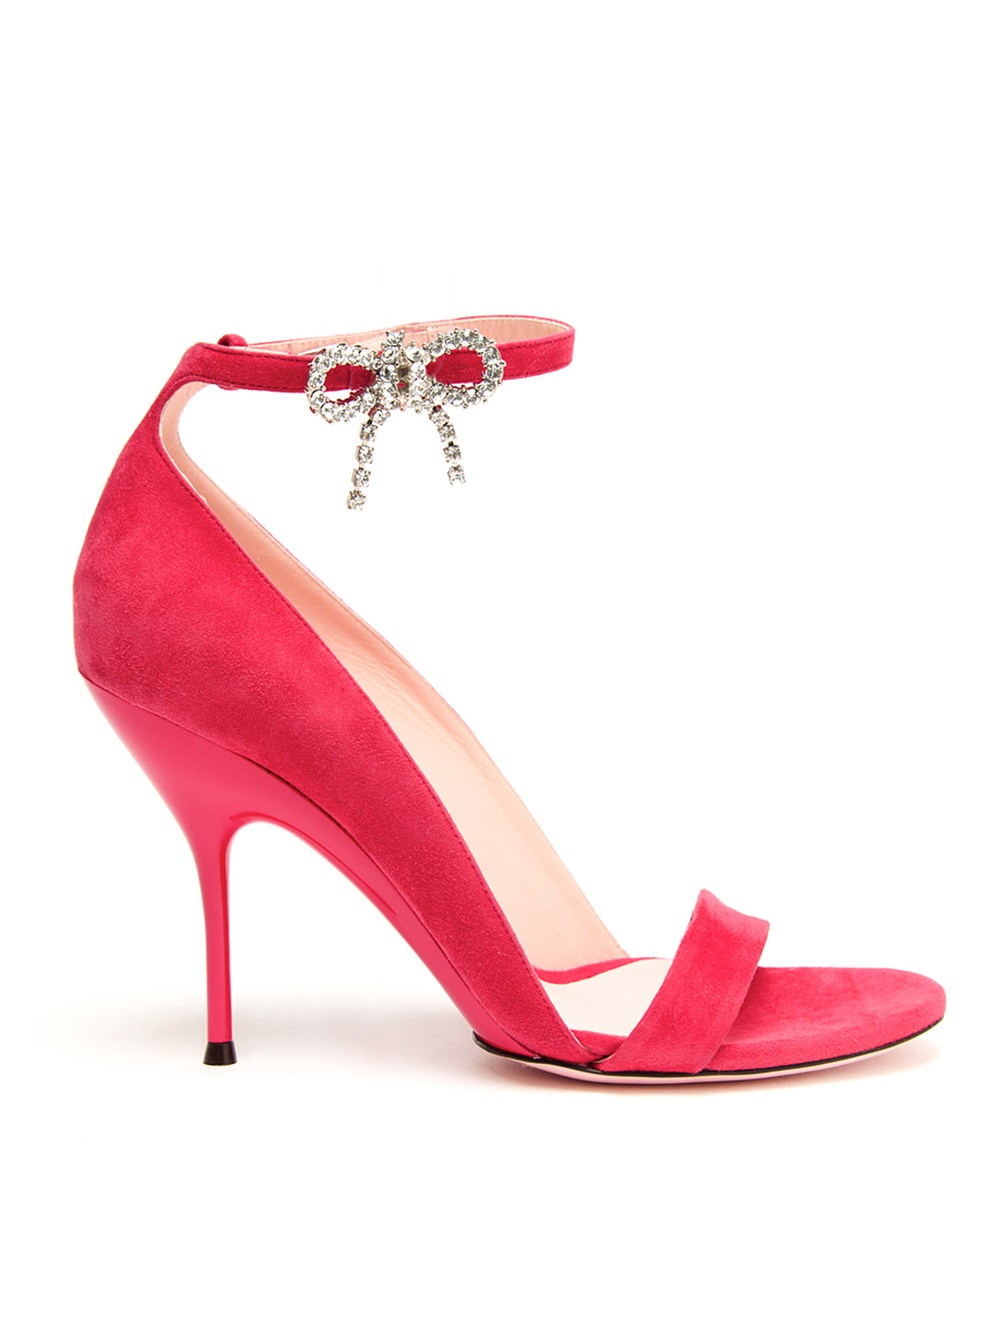 Lyst Nina Ricci Bow Sandal In Pink